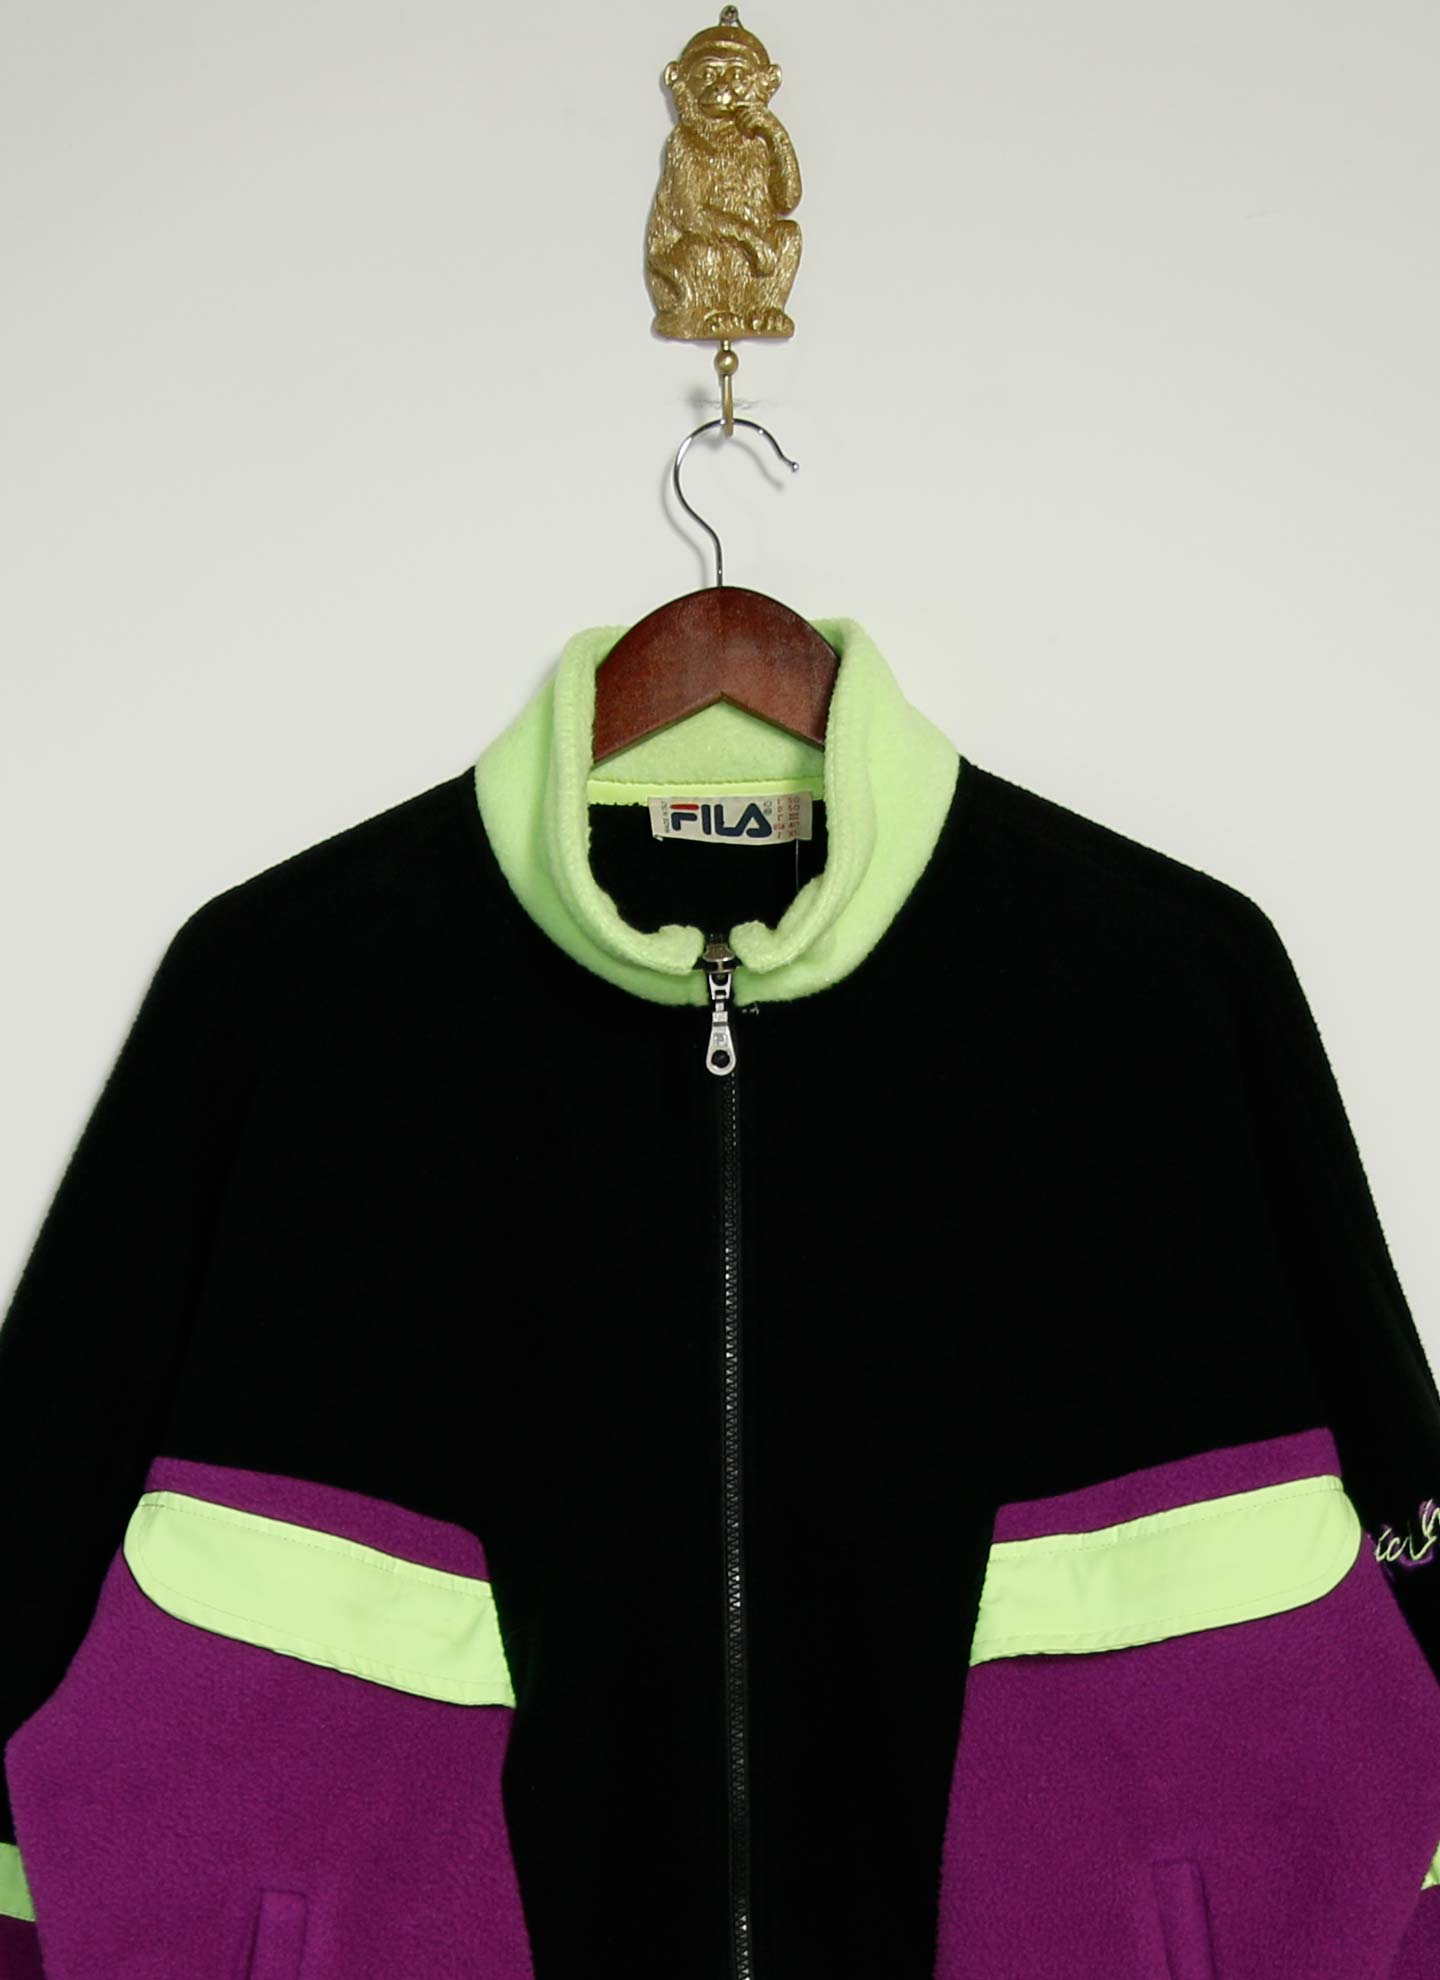 FILA Fleece